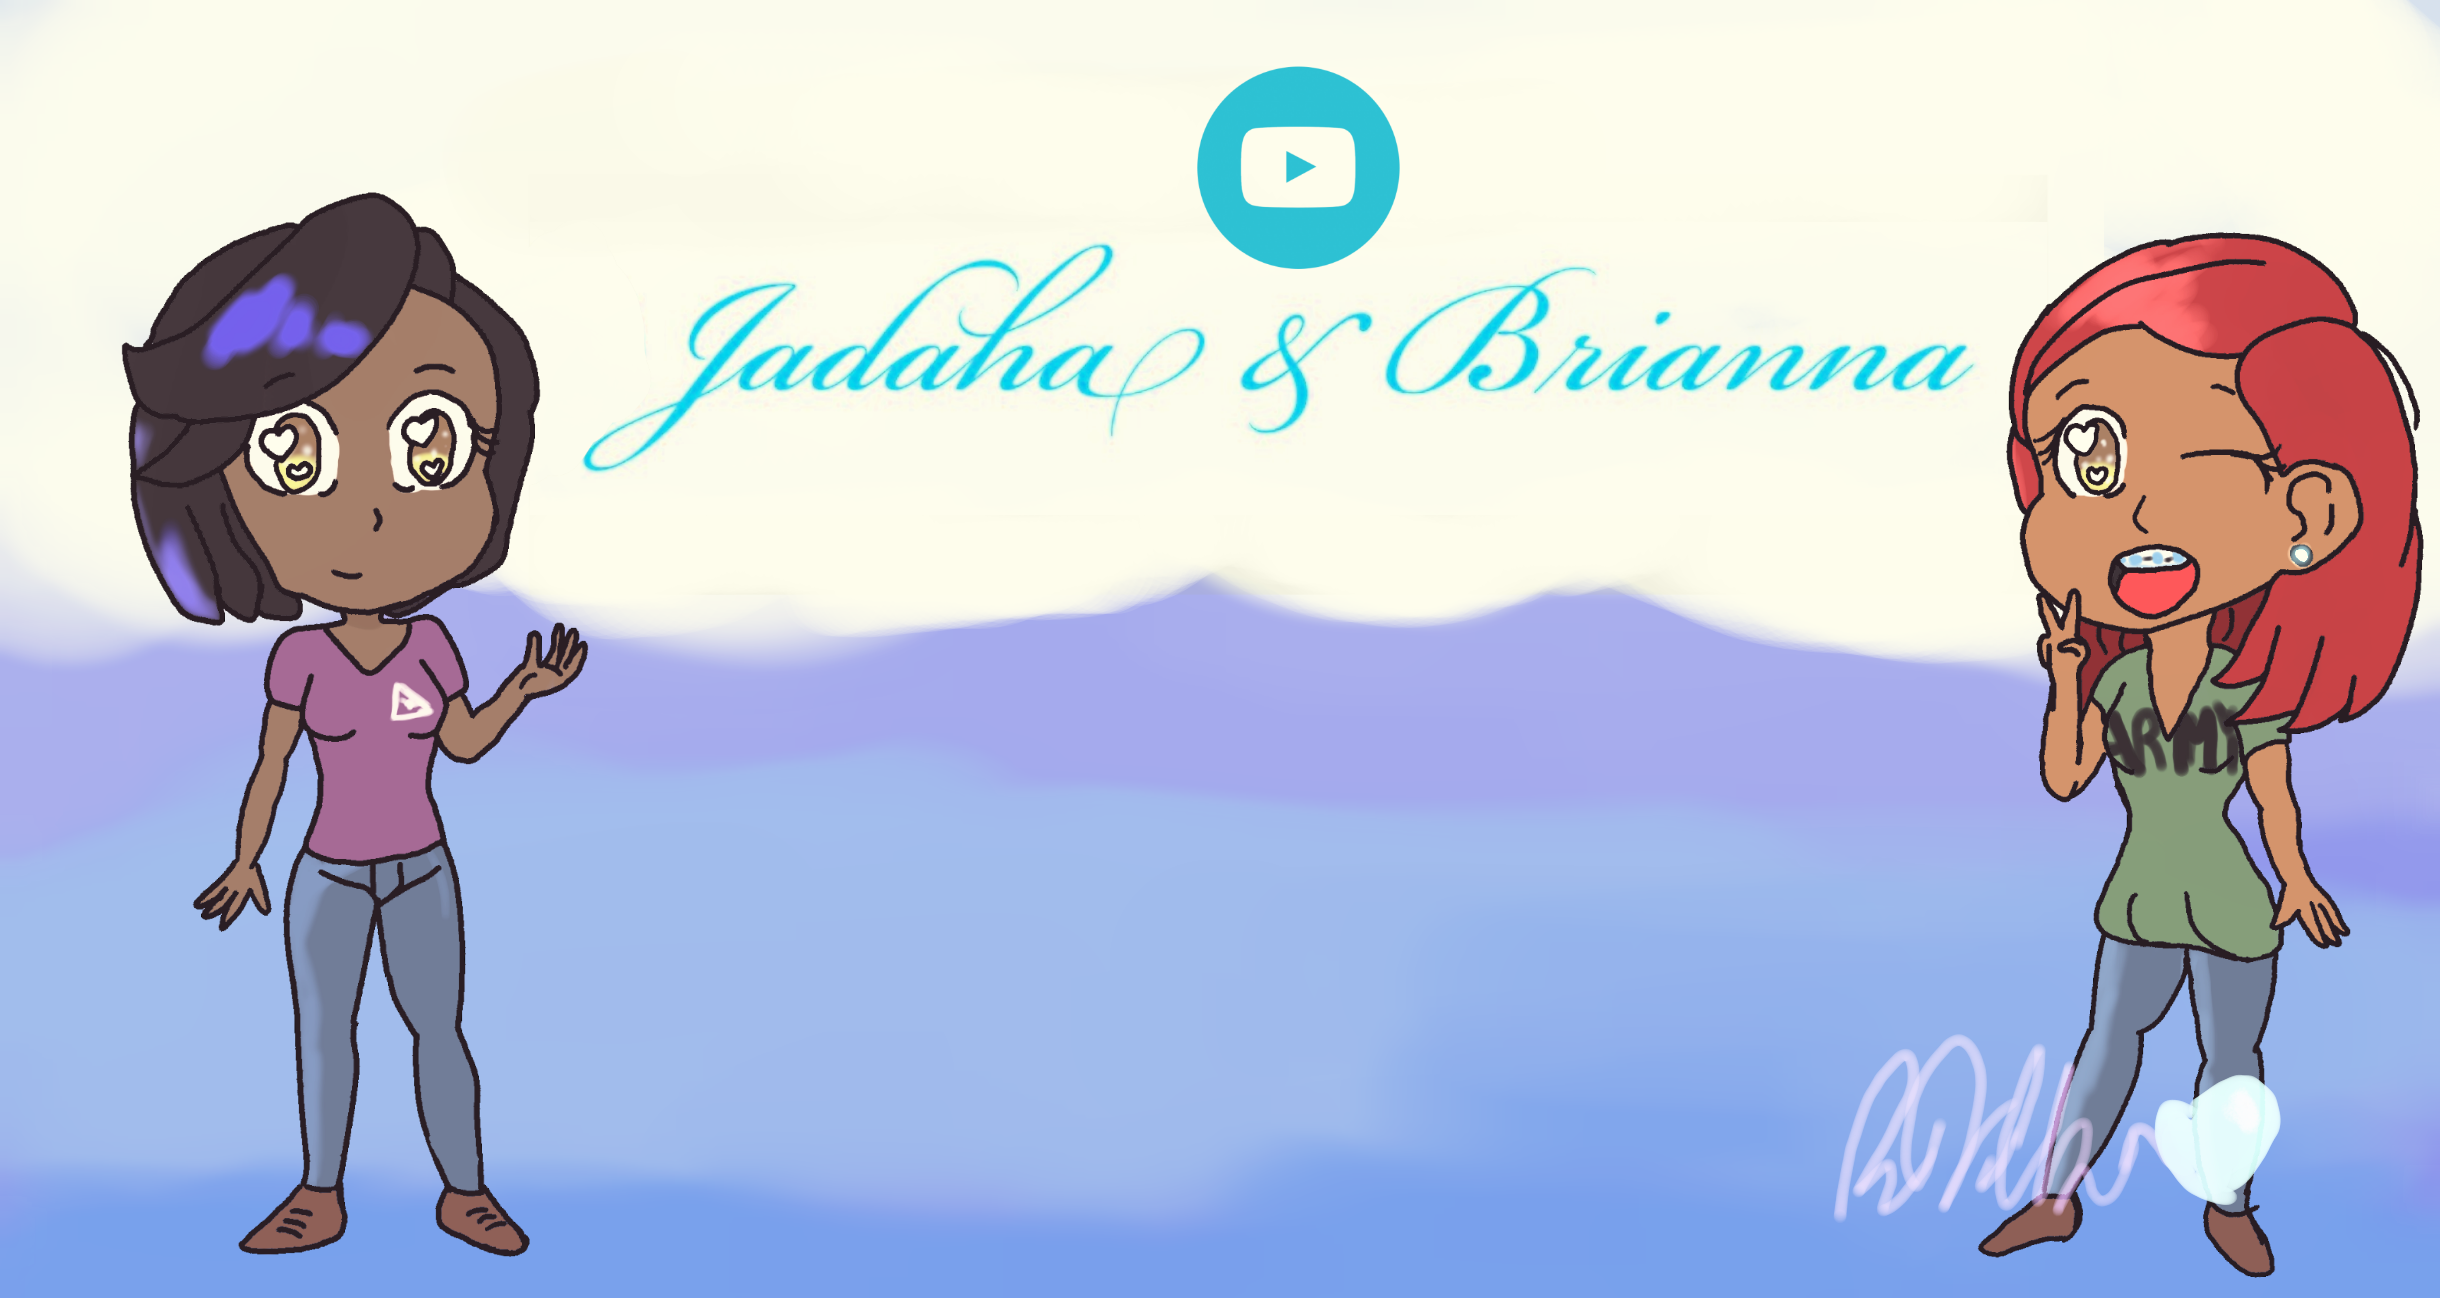 ||Jadaha and Brianna~|| by Stewie106